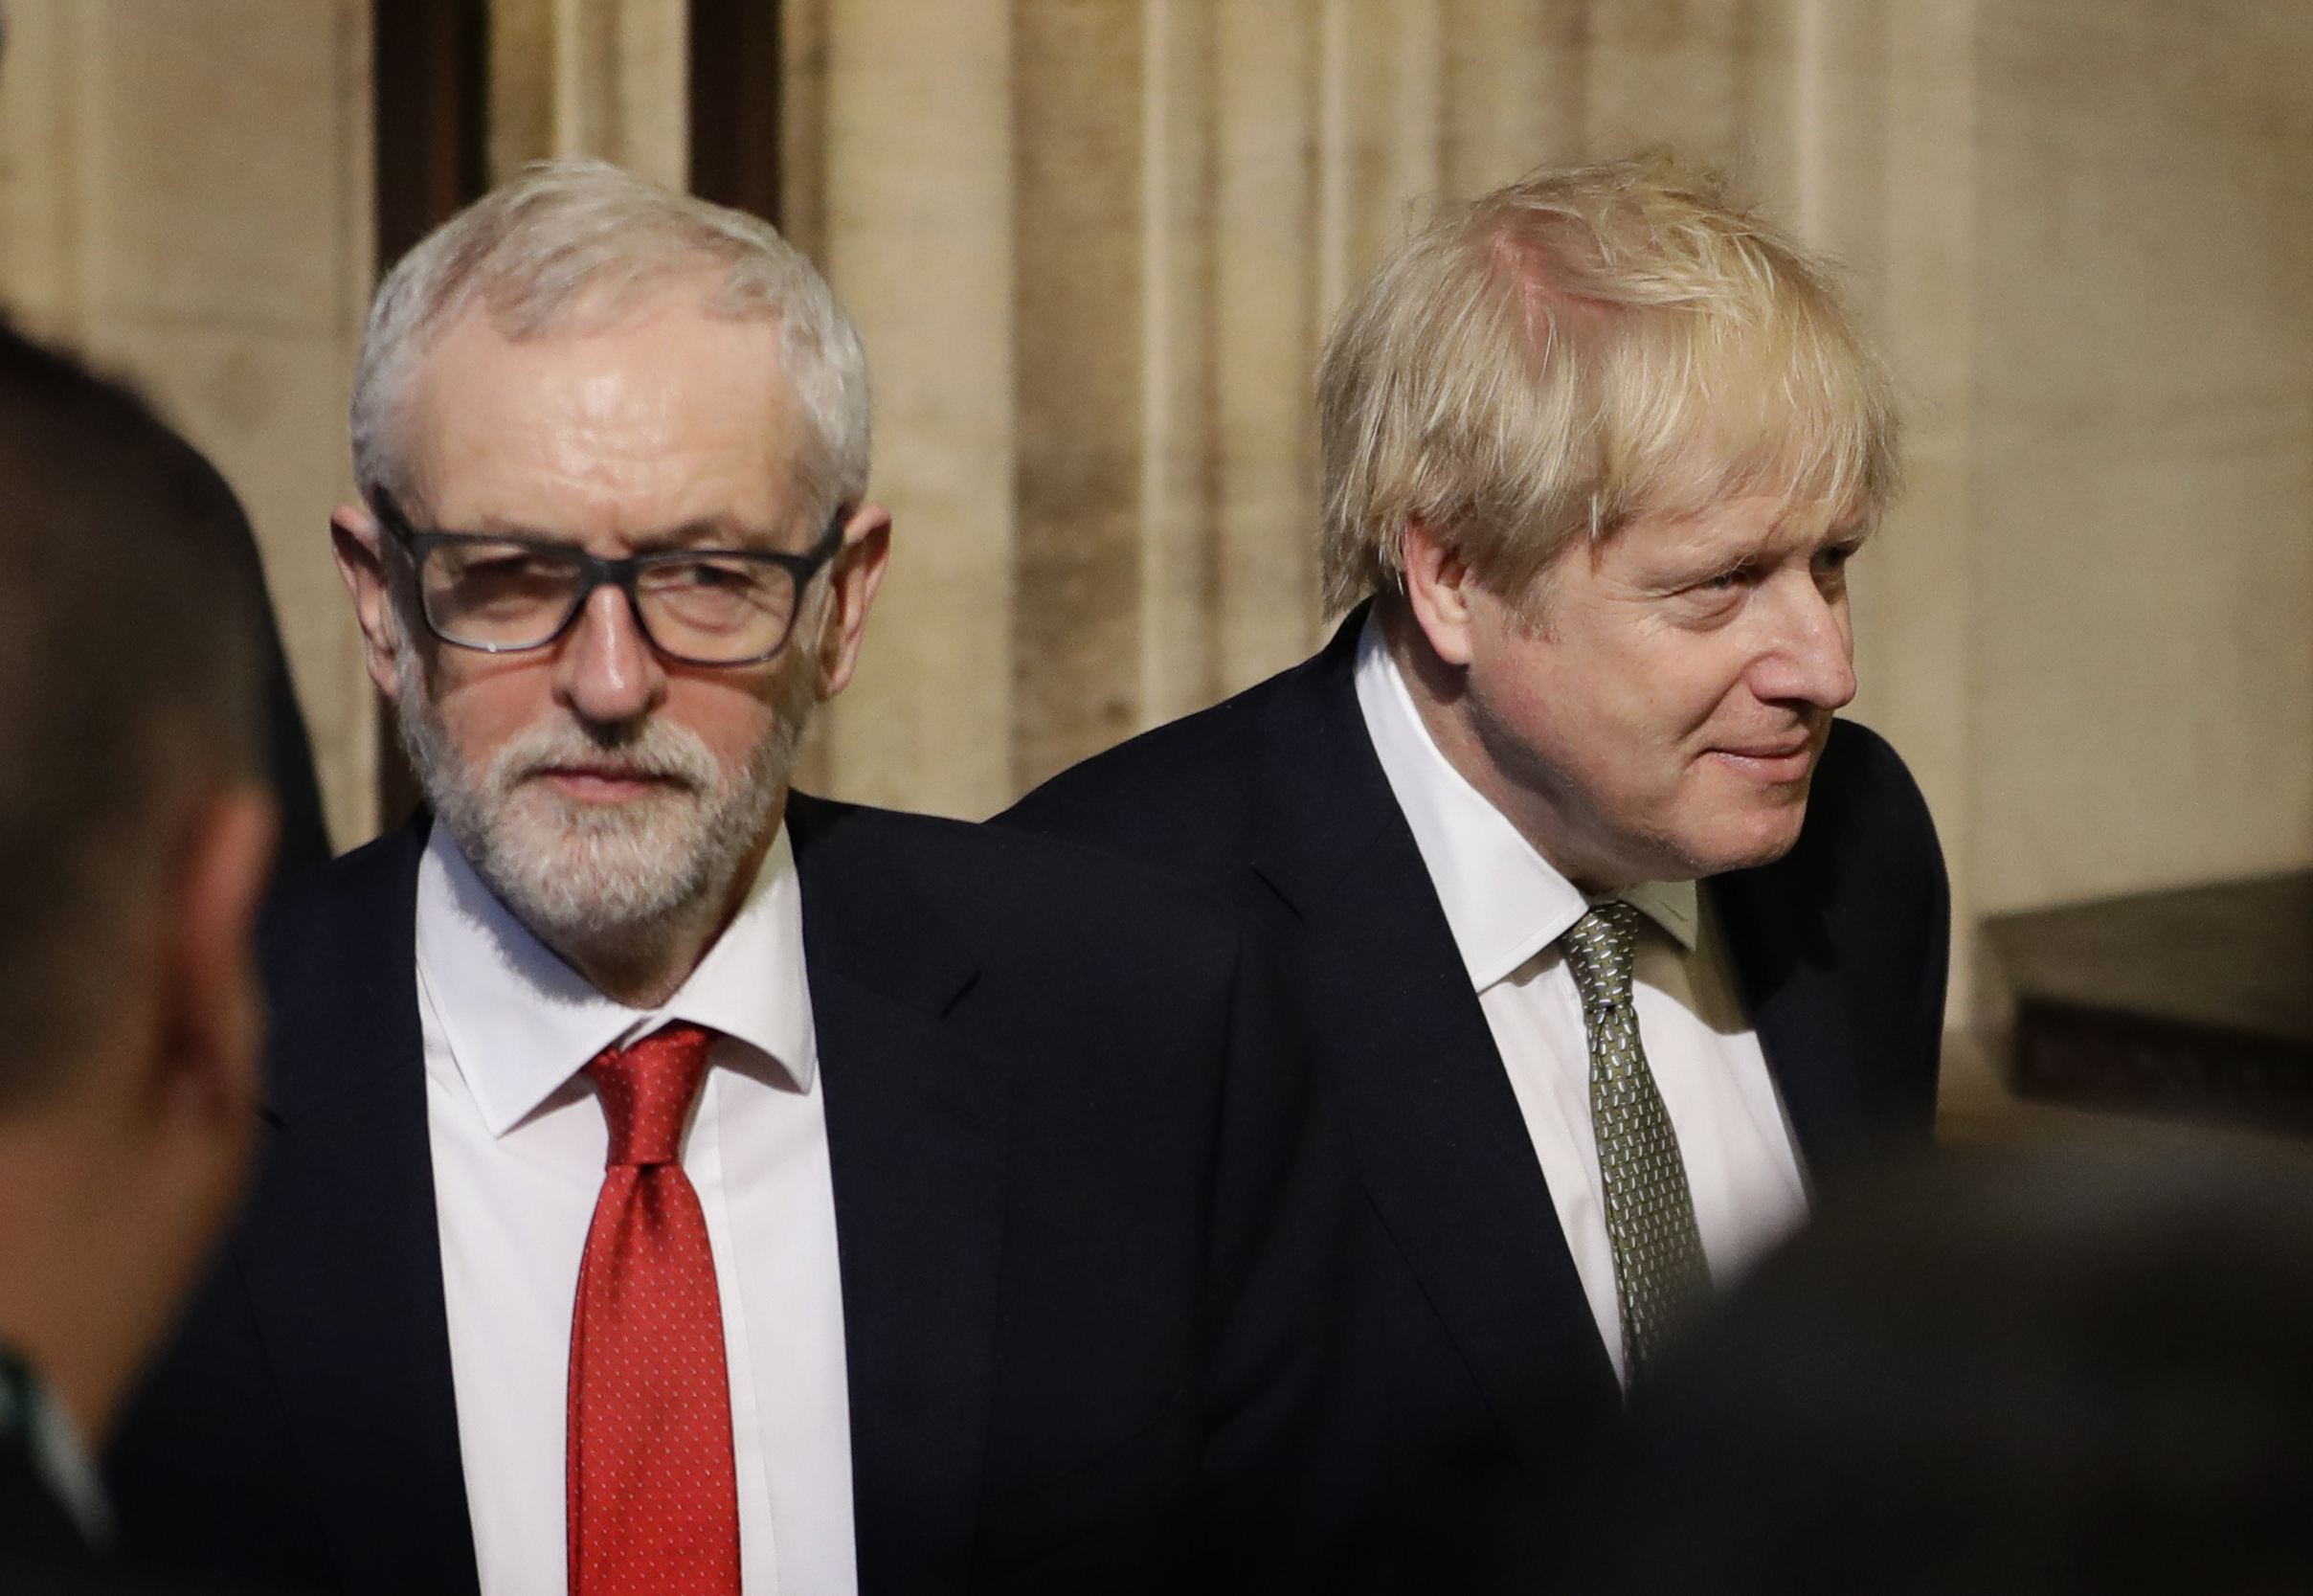 Prime Minister Boris Johnson and opposition Labour Party Leader Jeremy Corbyn walk through the Members' Lobby in the House of Commons during the State Opening of Parliament by Queen Elizabeth II, at the Palace of Westminster in London.